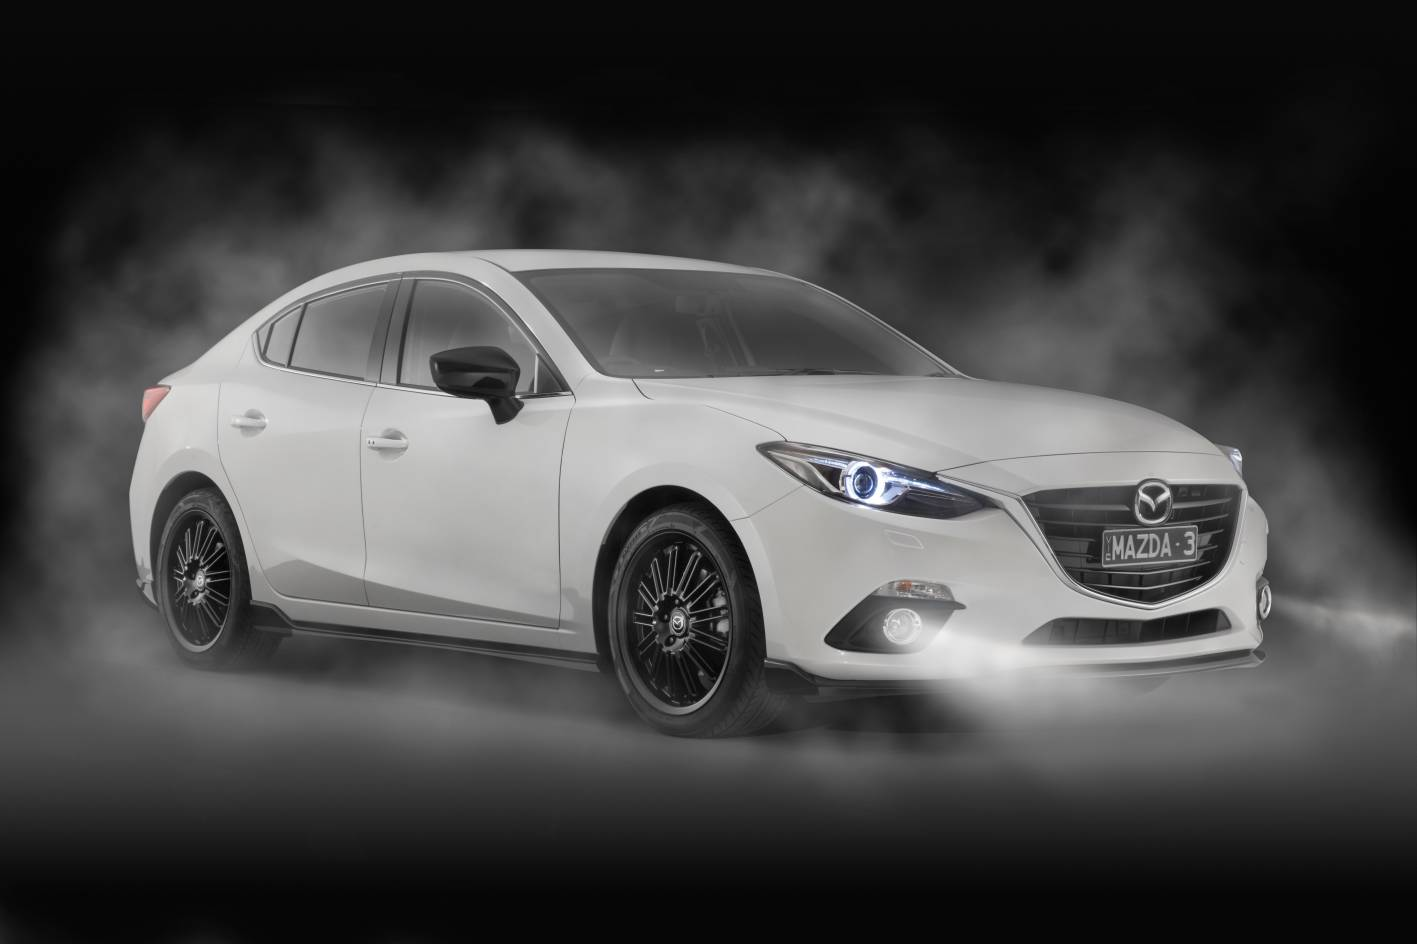 2019 Mazda 3 Mps Car Photos Catalog 2019